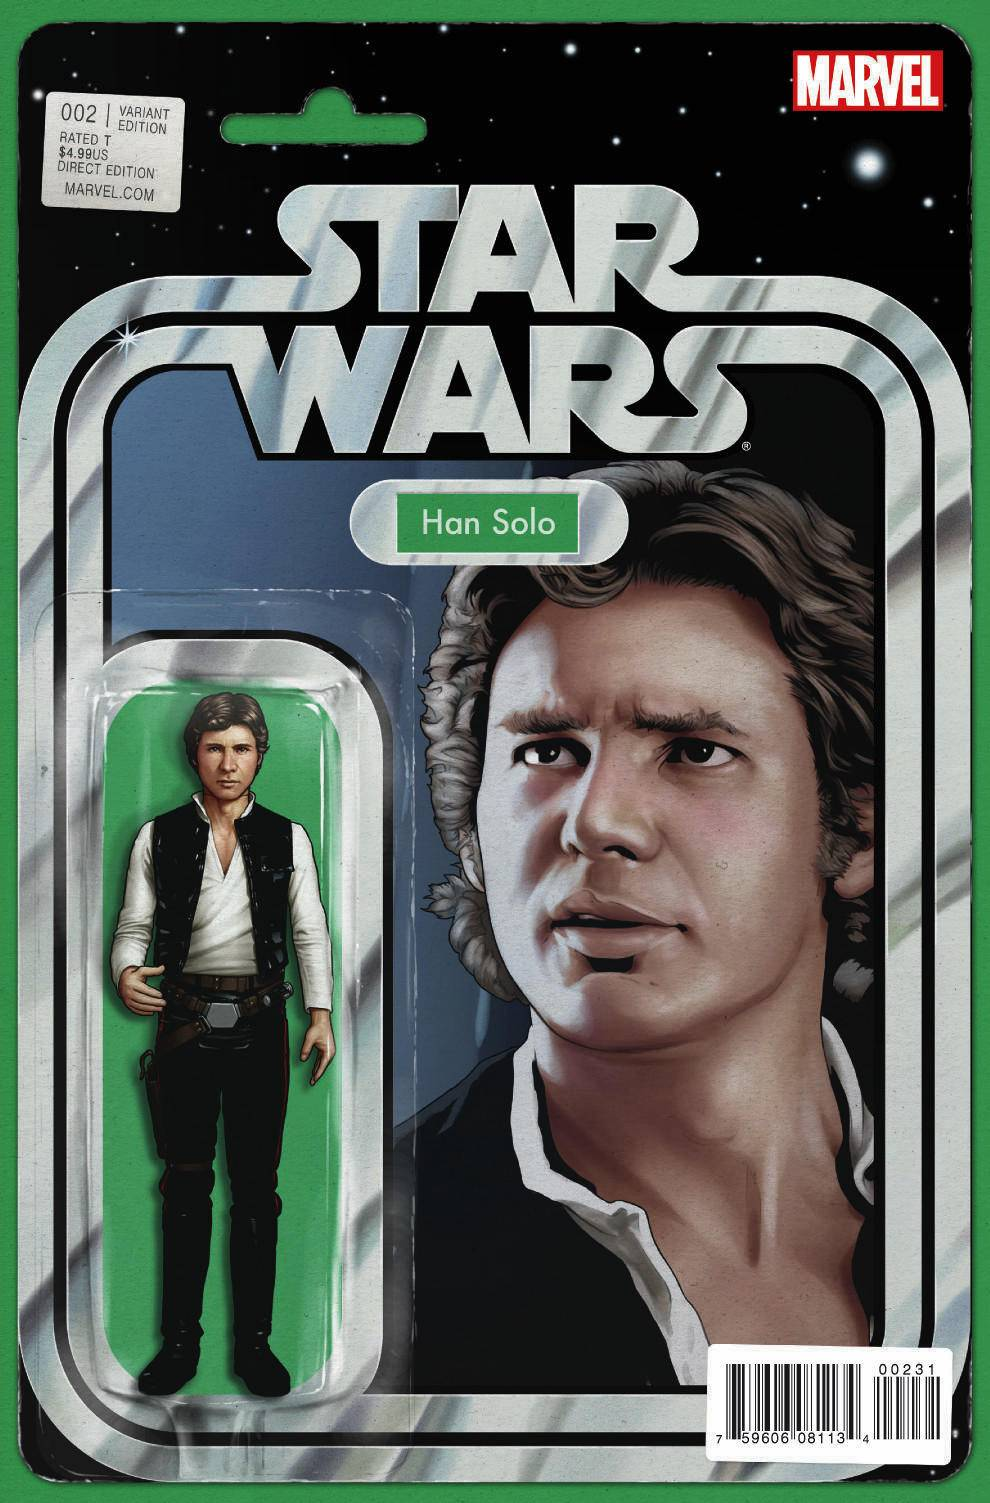 Star Wars #2 (Action Figure Variant Cover) (04.02.2015)